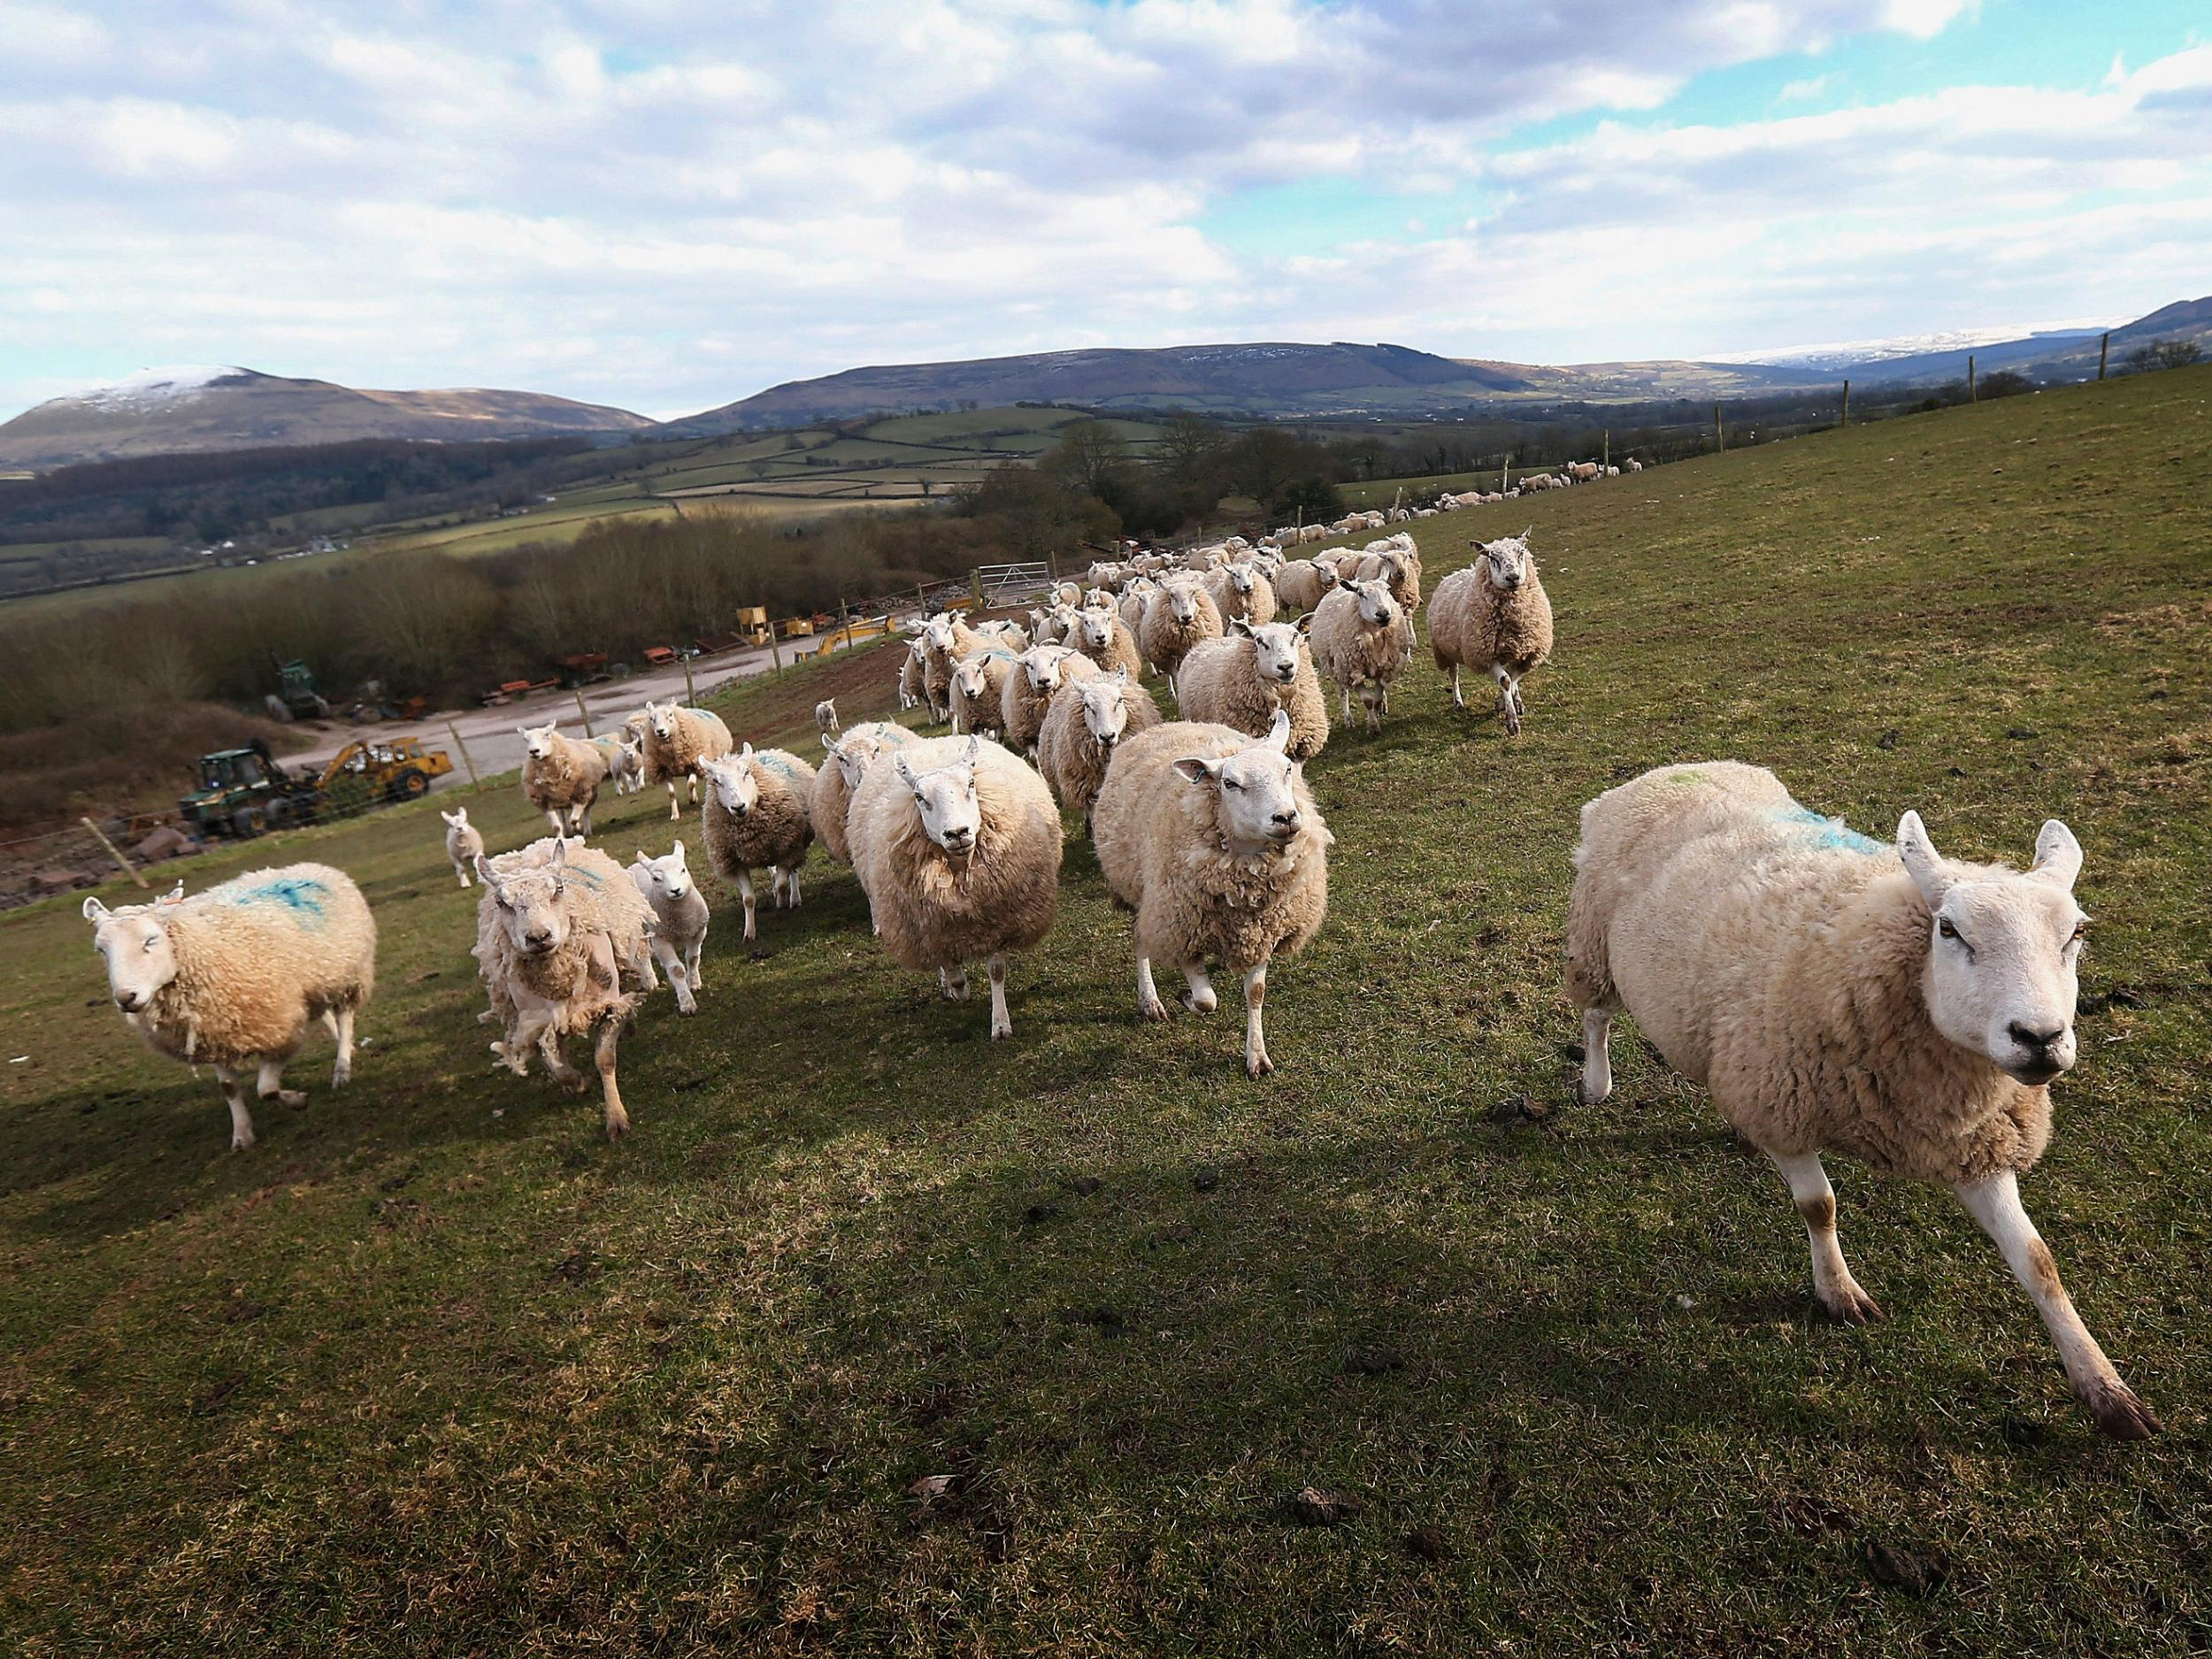 Sheep Now Outnumber People Three To One In Wales